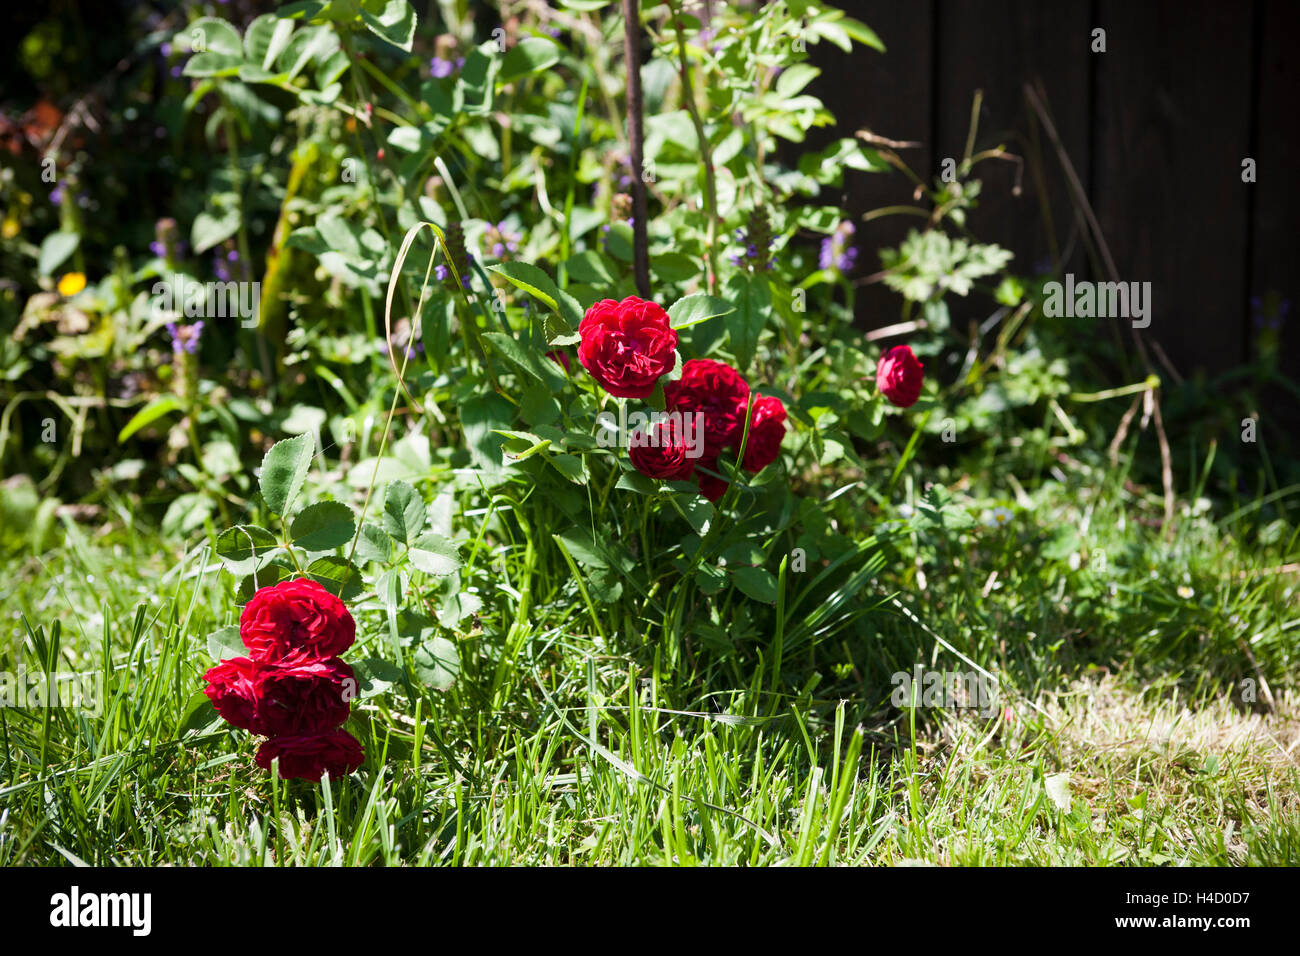 Red 'rambler rose' with blossoms - Stock Image